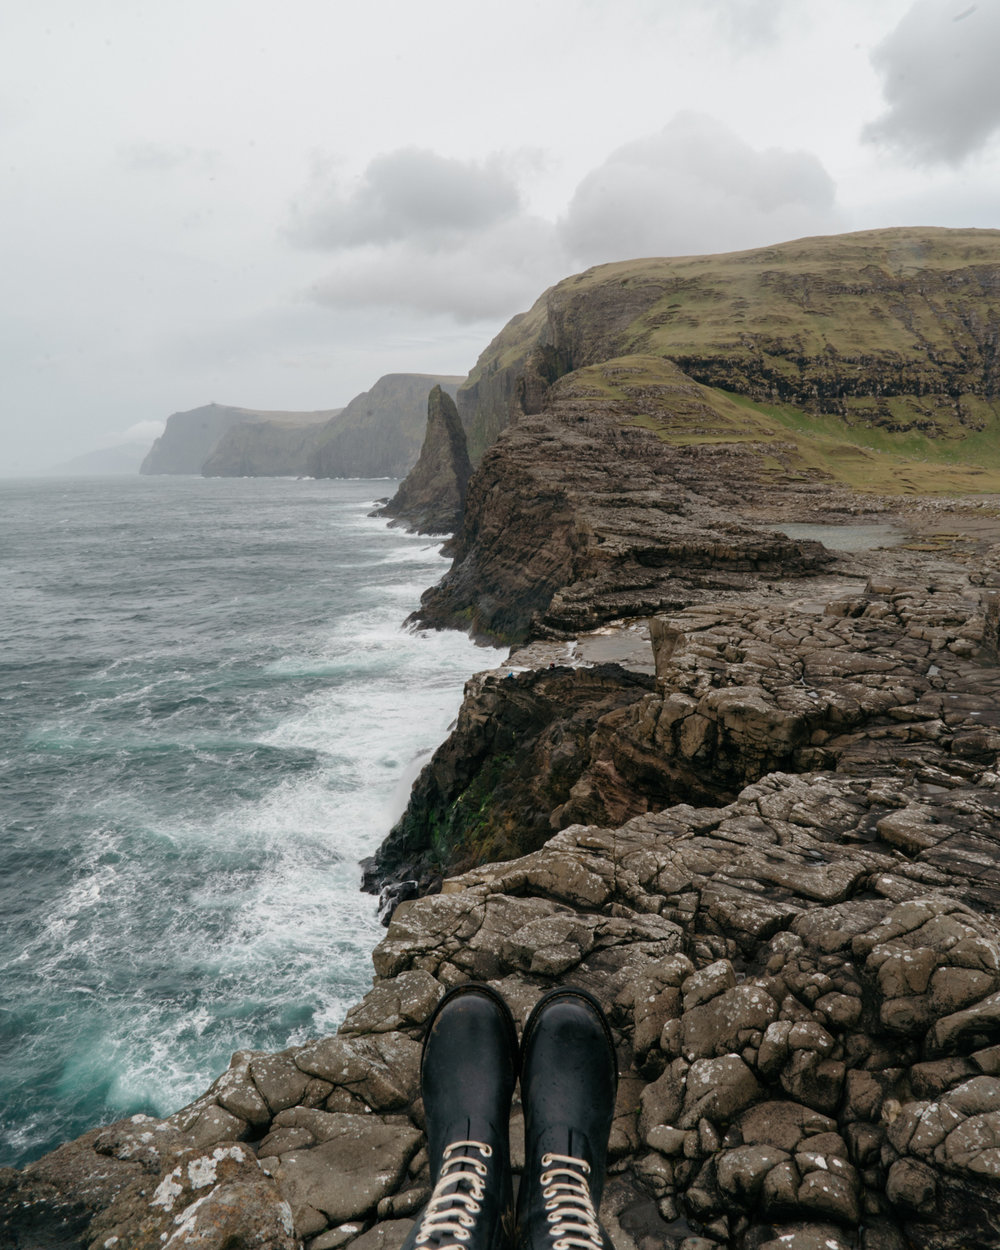 wrenee_faroe_islands-10.jpg